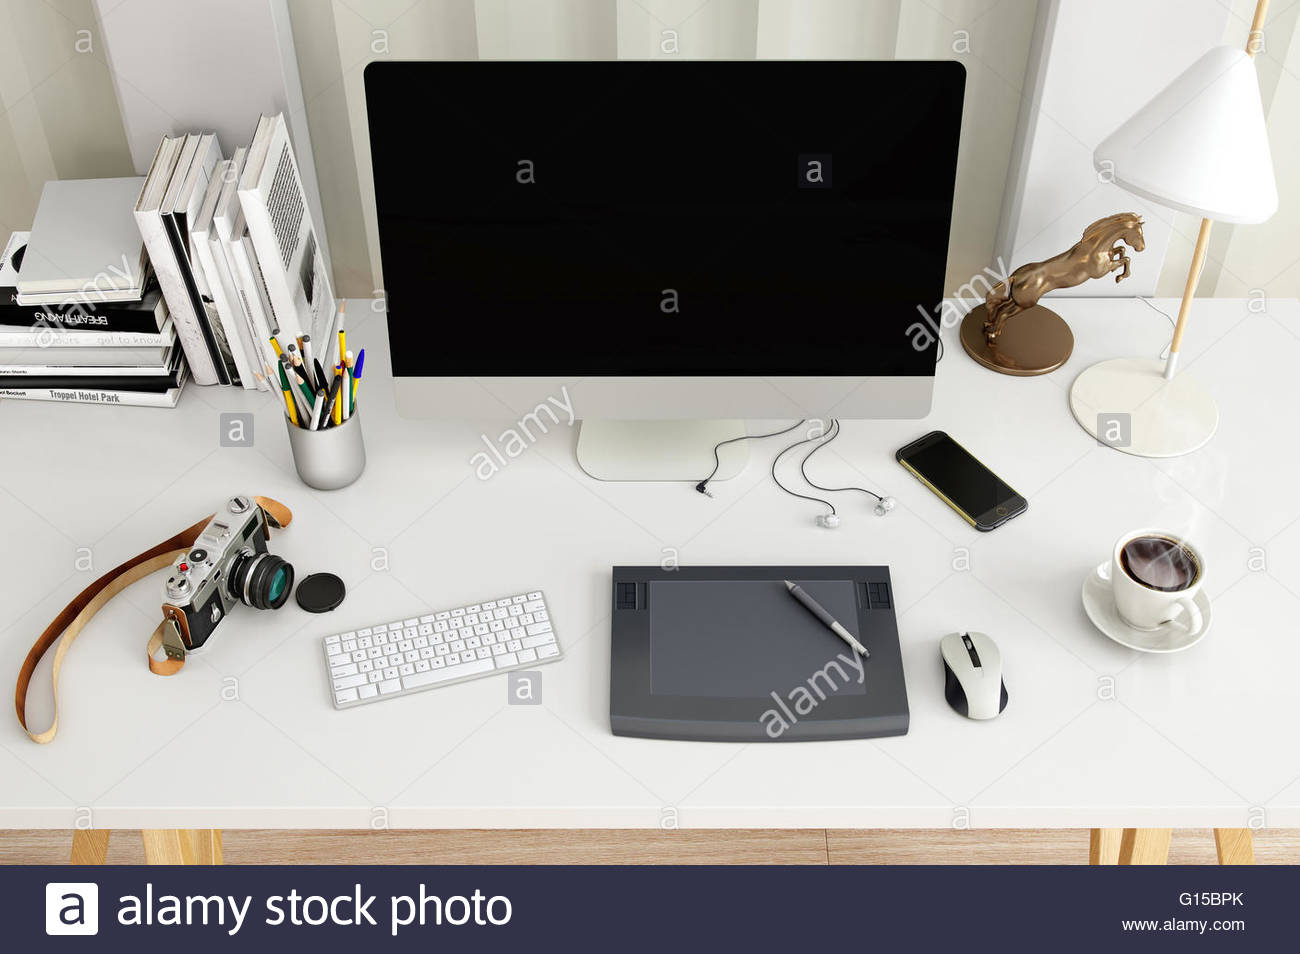 1300x954 Creative Desktop Computer With Drawing Tablet On A Desk In Office